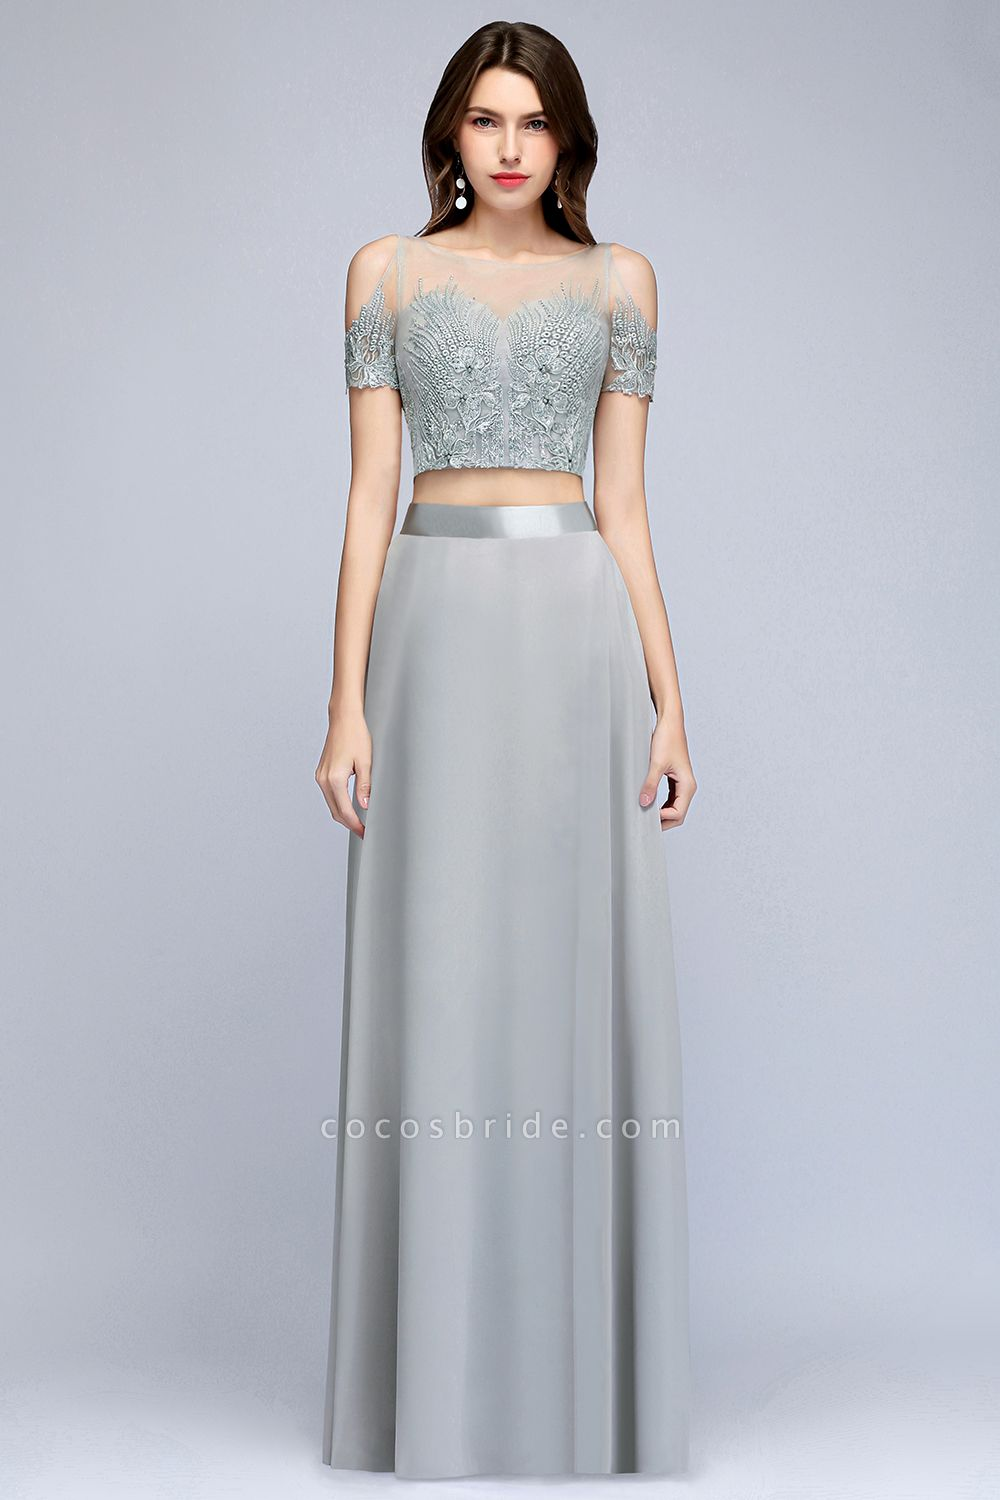 Two-piece Appliqued Chiffon A-line Evening Dresses